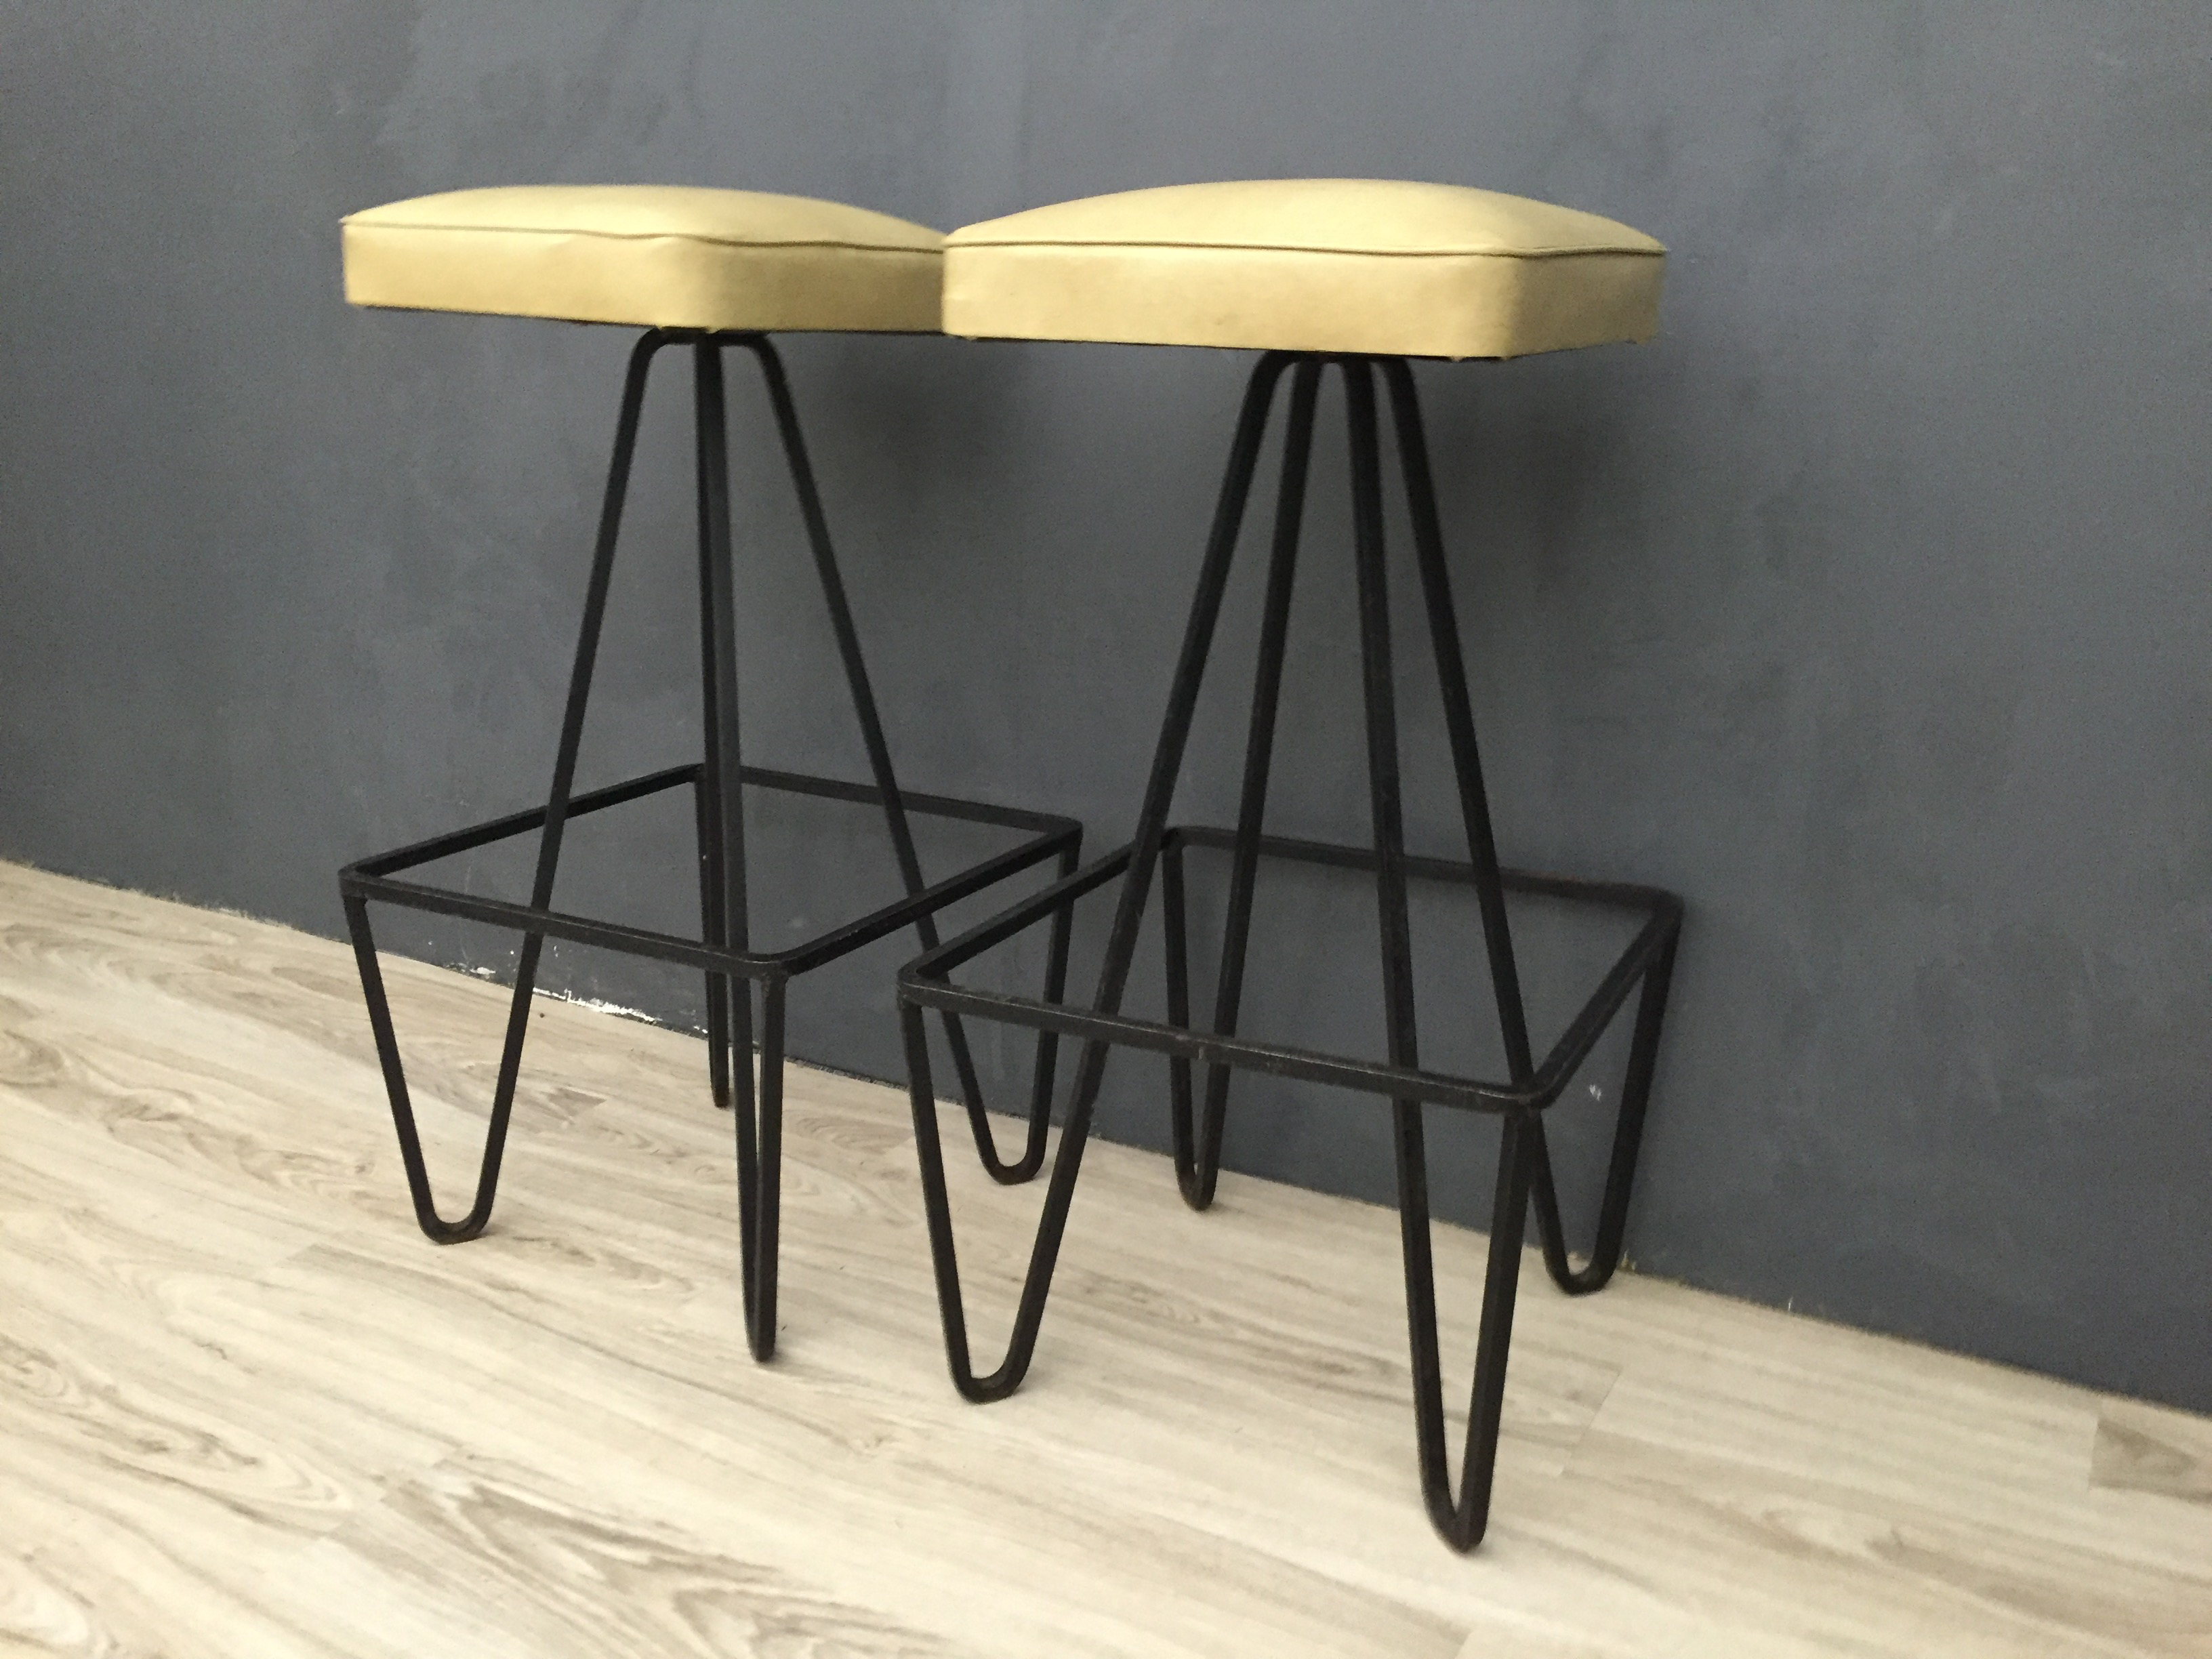 SALE - Weinberg Upholstered Cast Iron Barstools